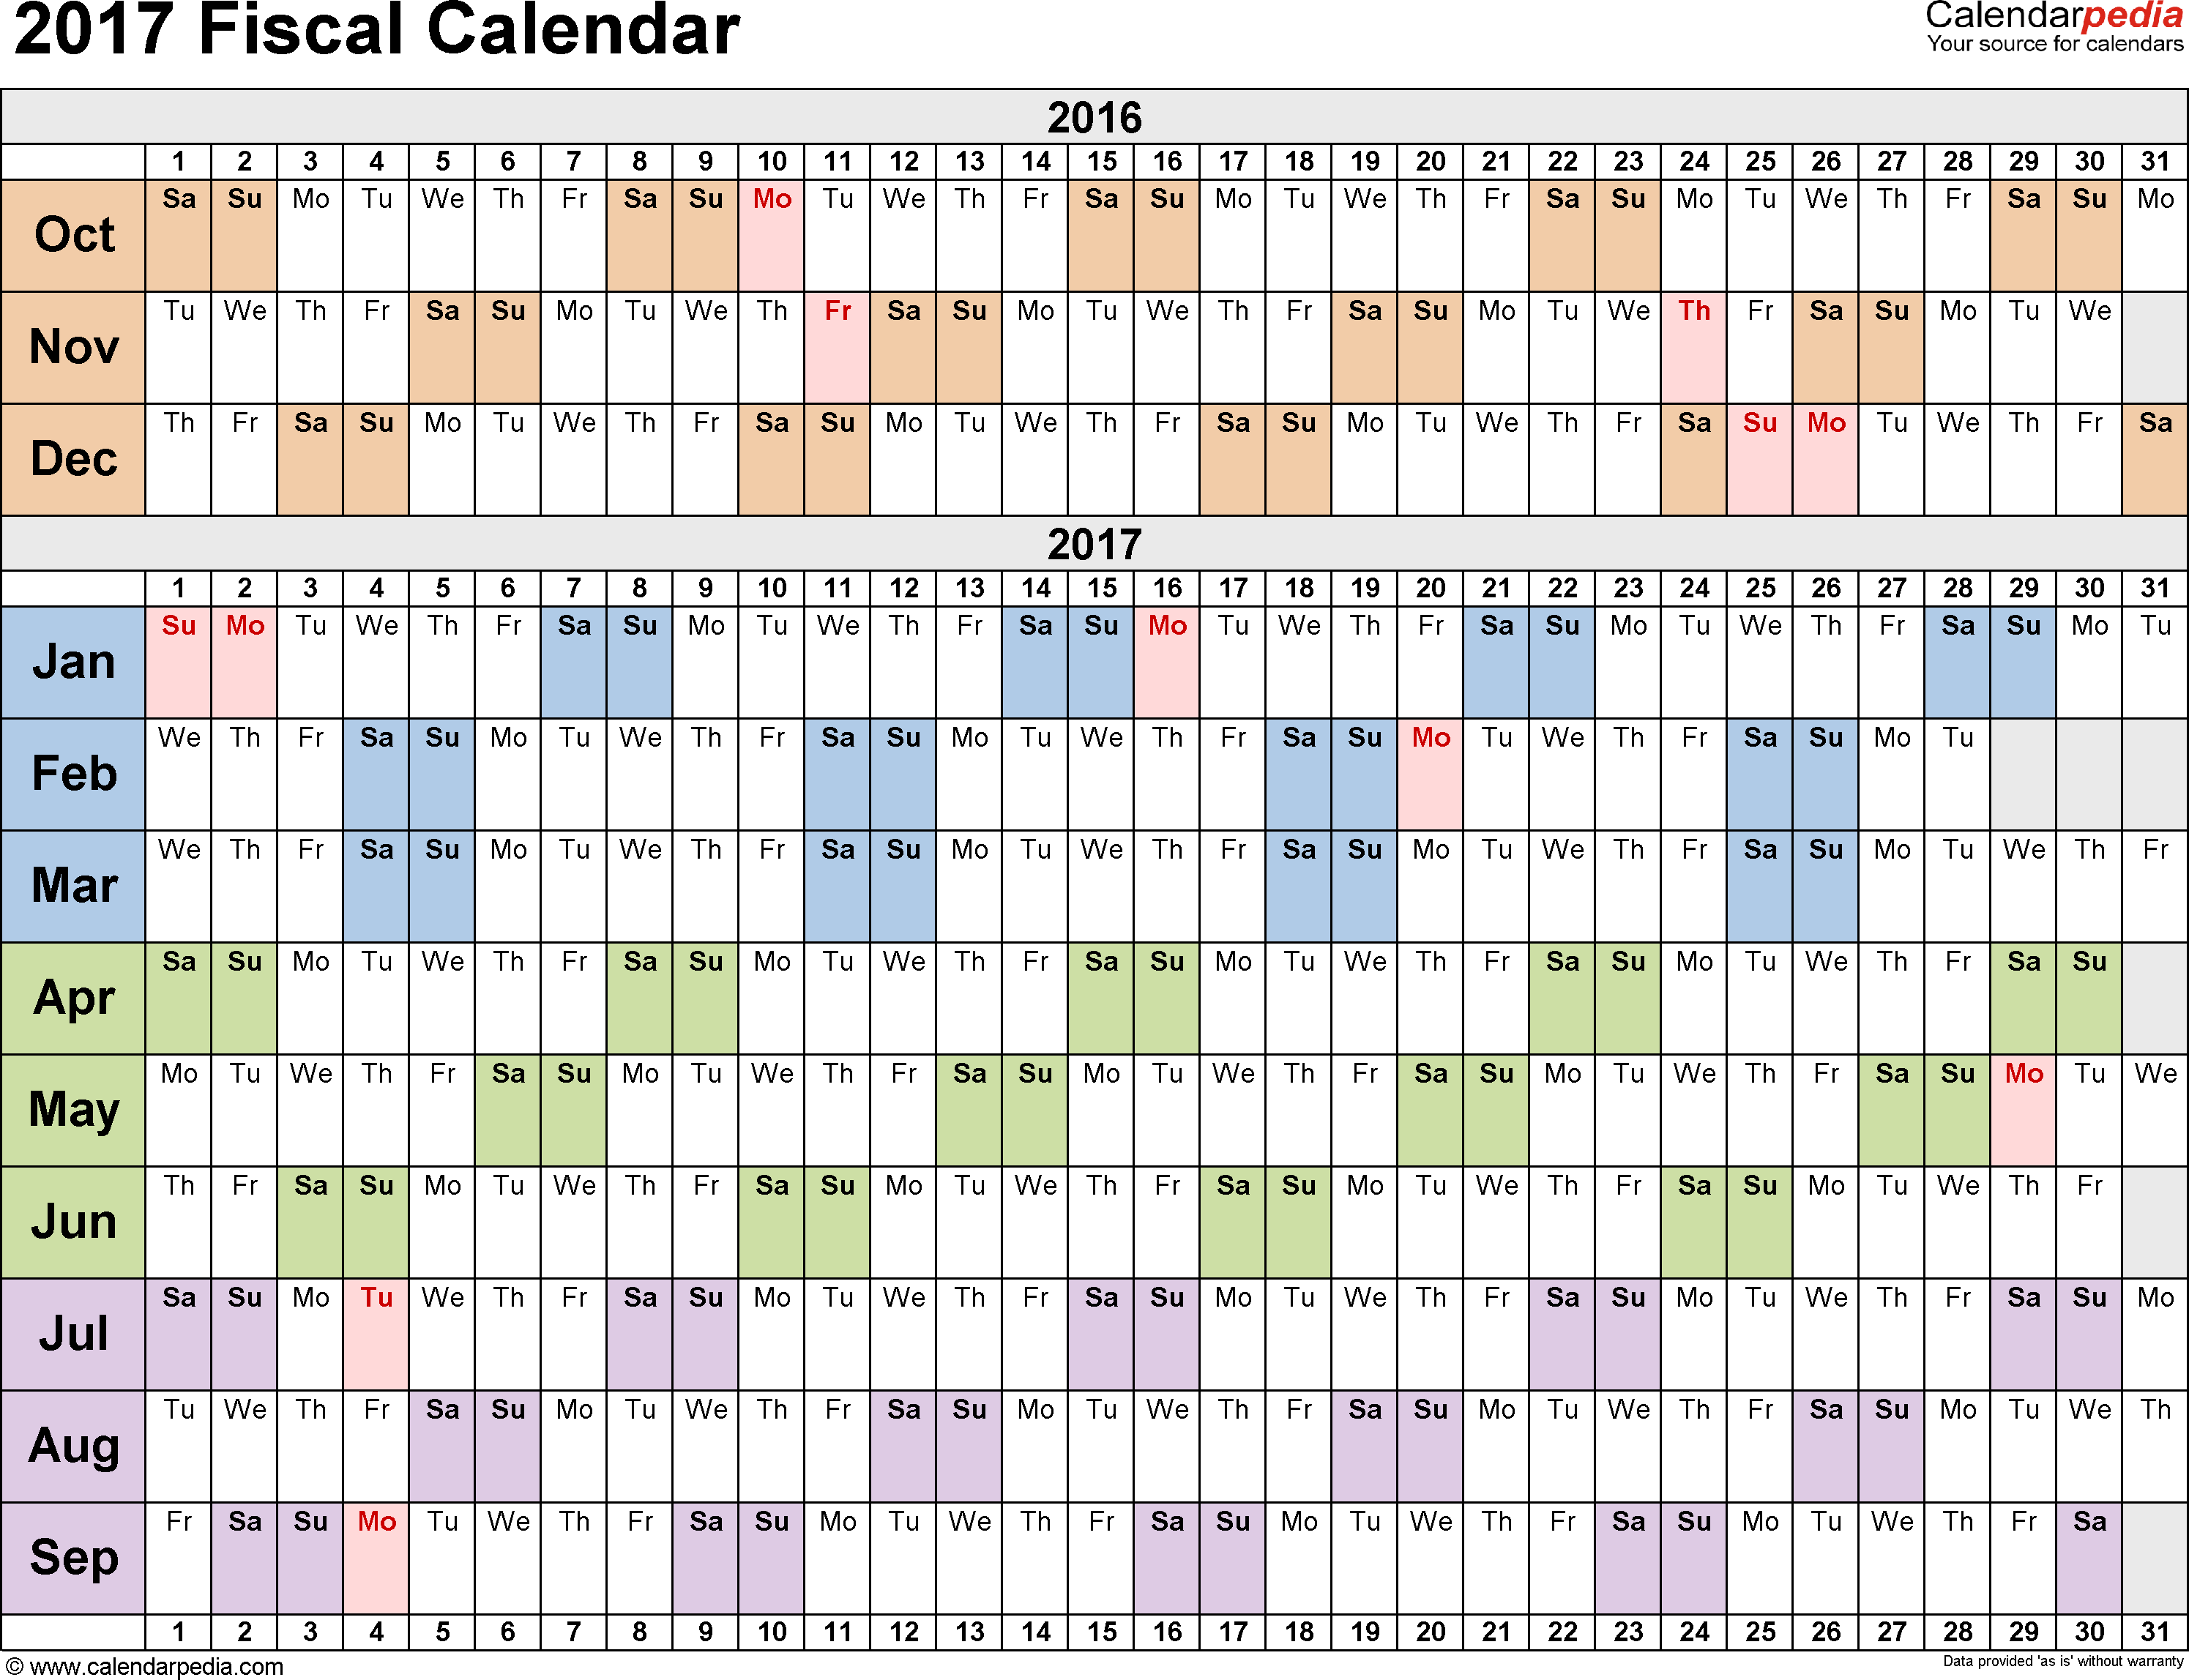 Template 2: Fiscal year calendar 2017 for Excel, landscape orientation, days horizontally (linear), 1 page